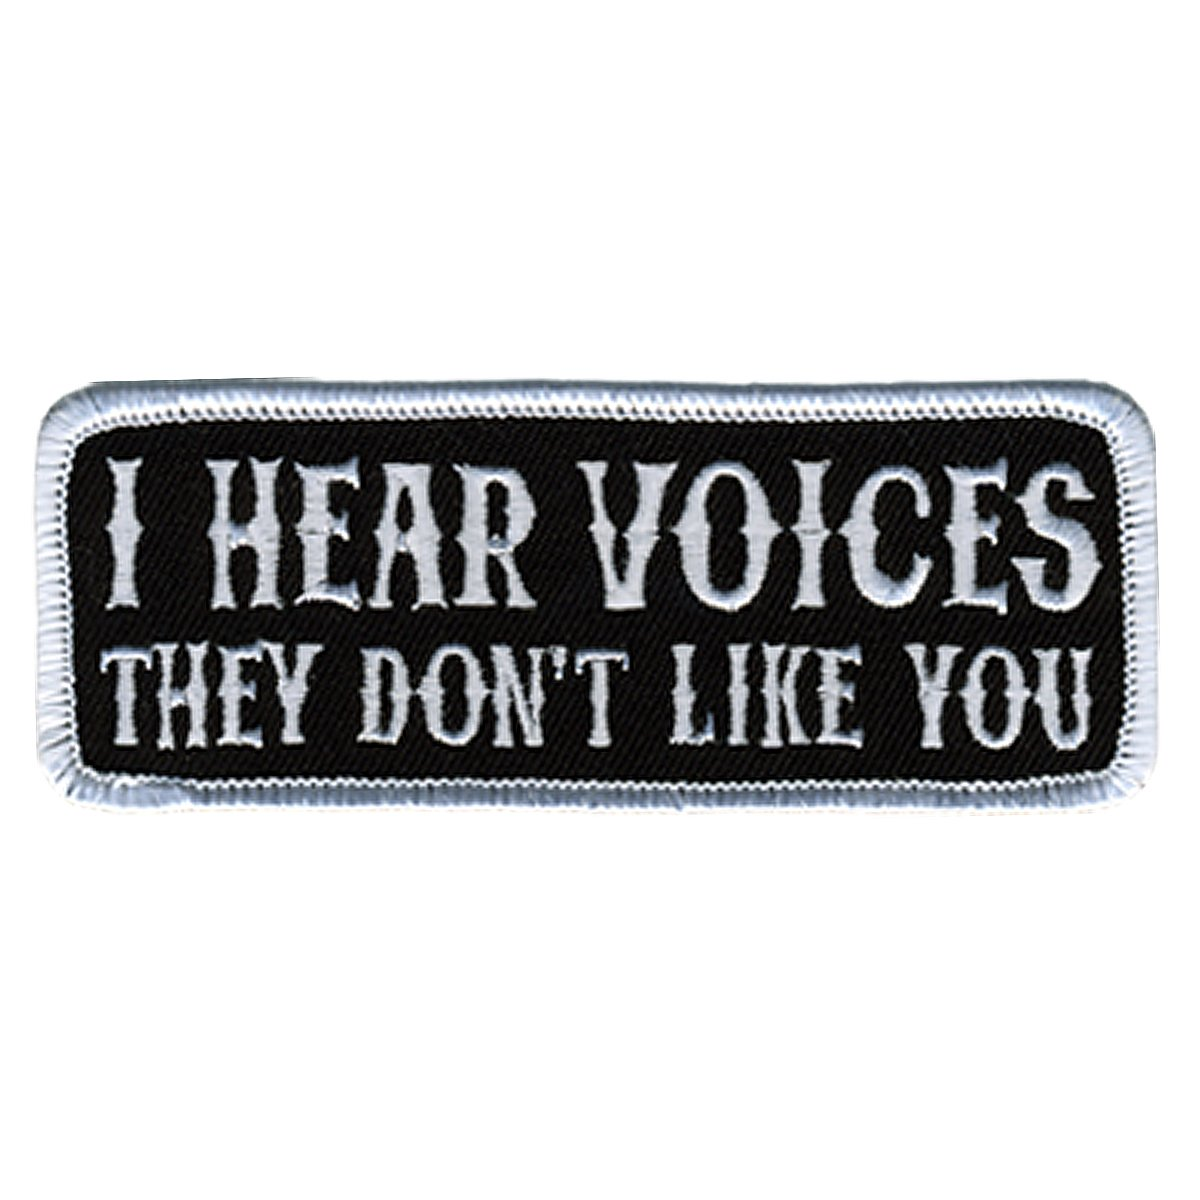 4 Width x 2 Height Hot Leathers I Hear Voices Patch